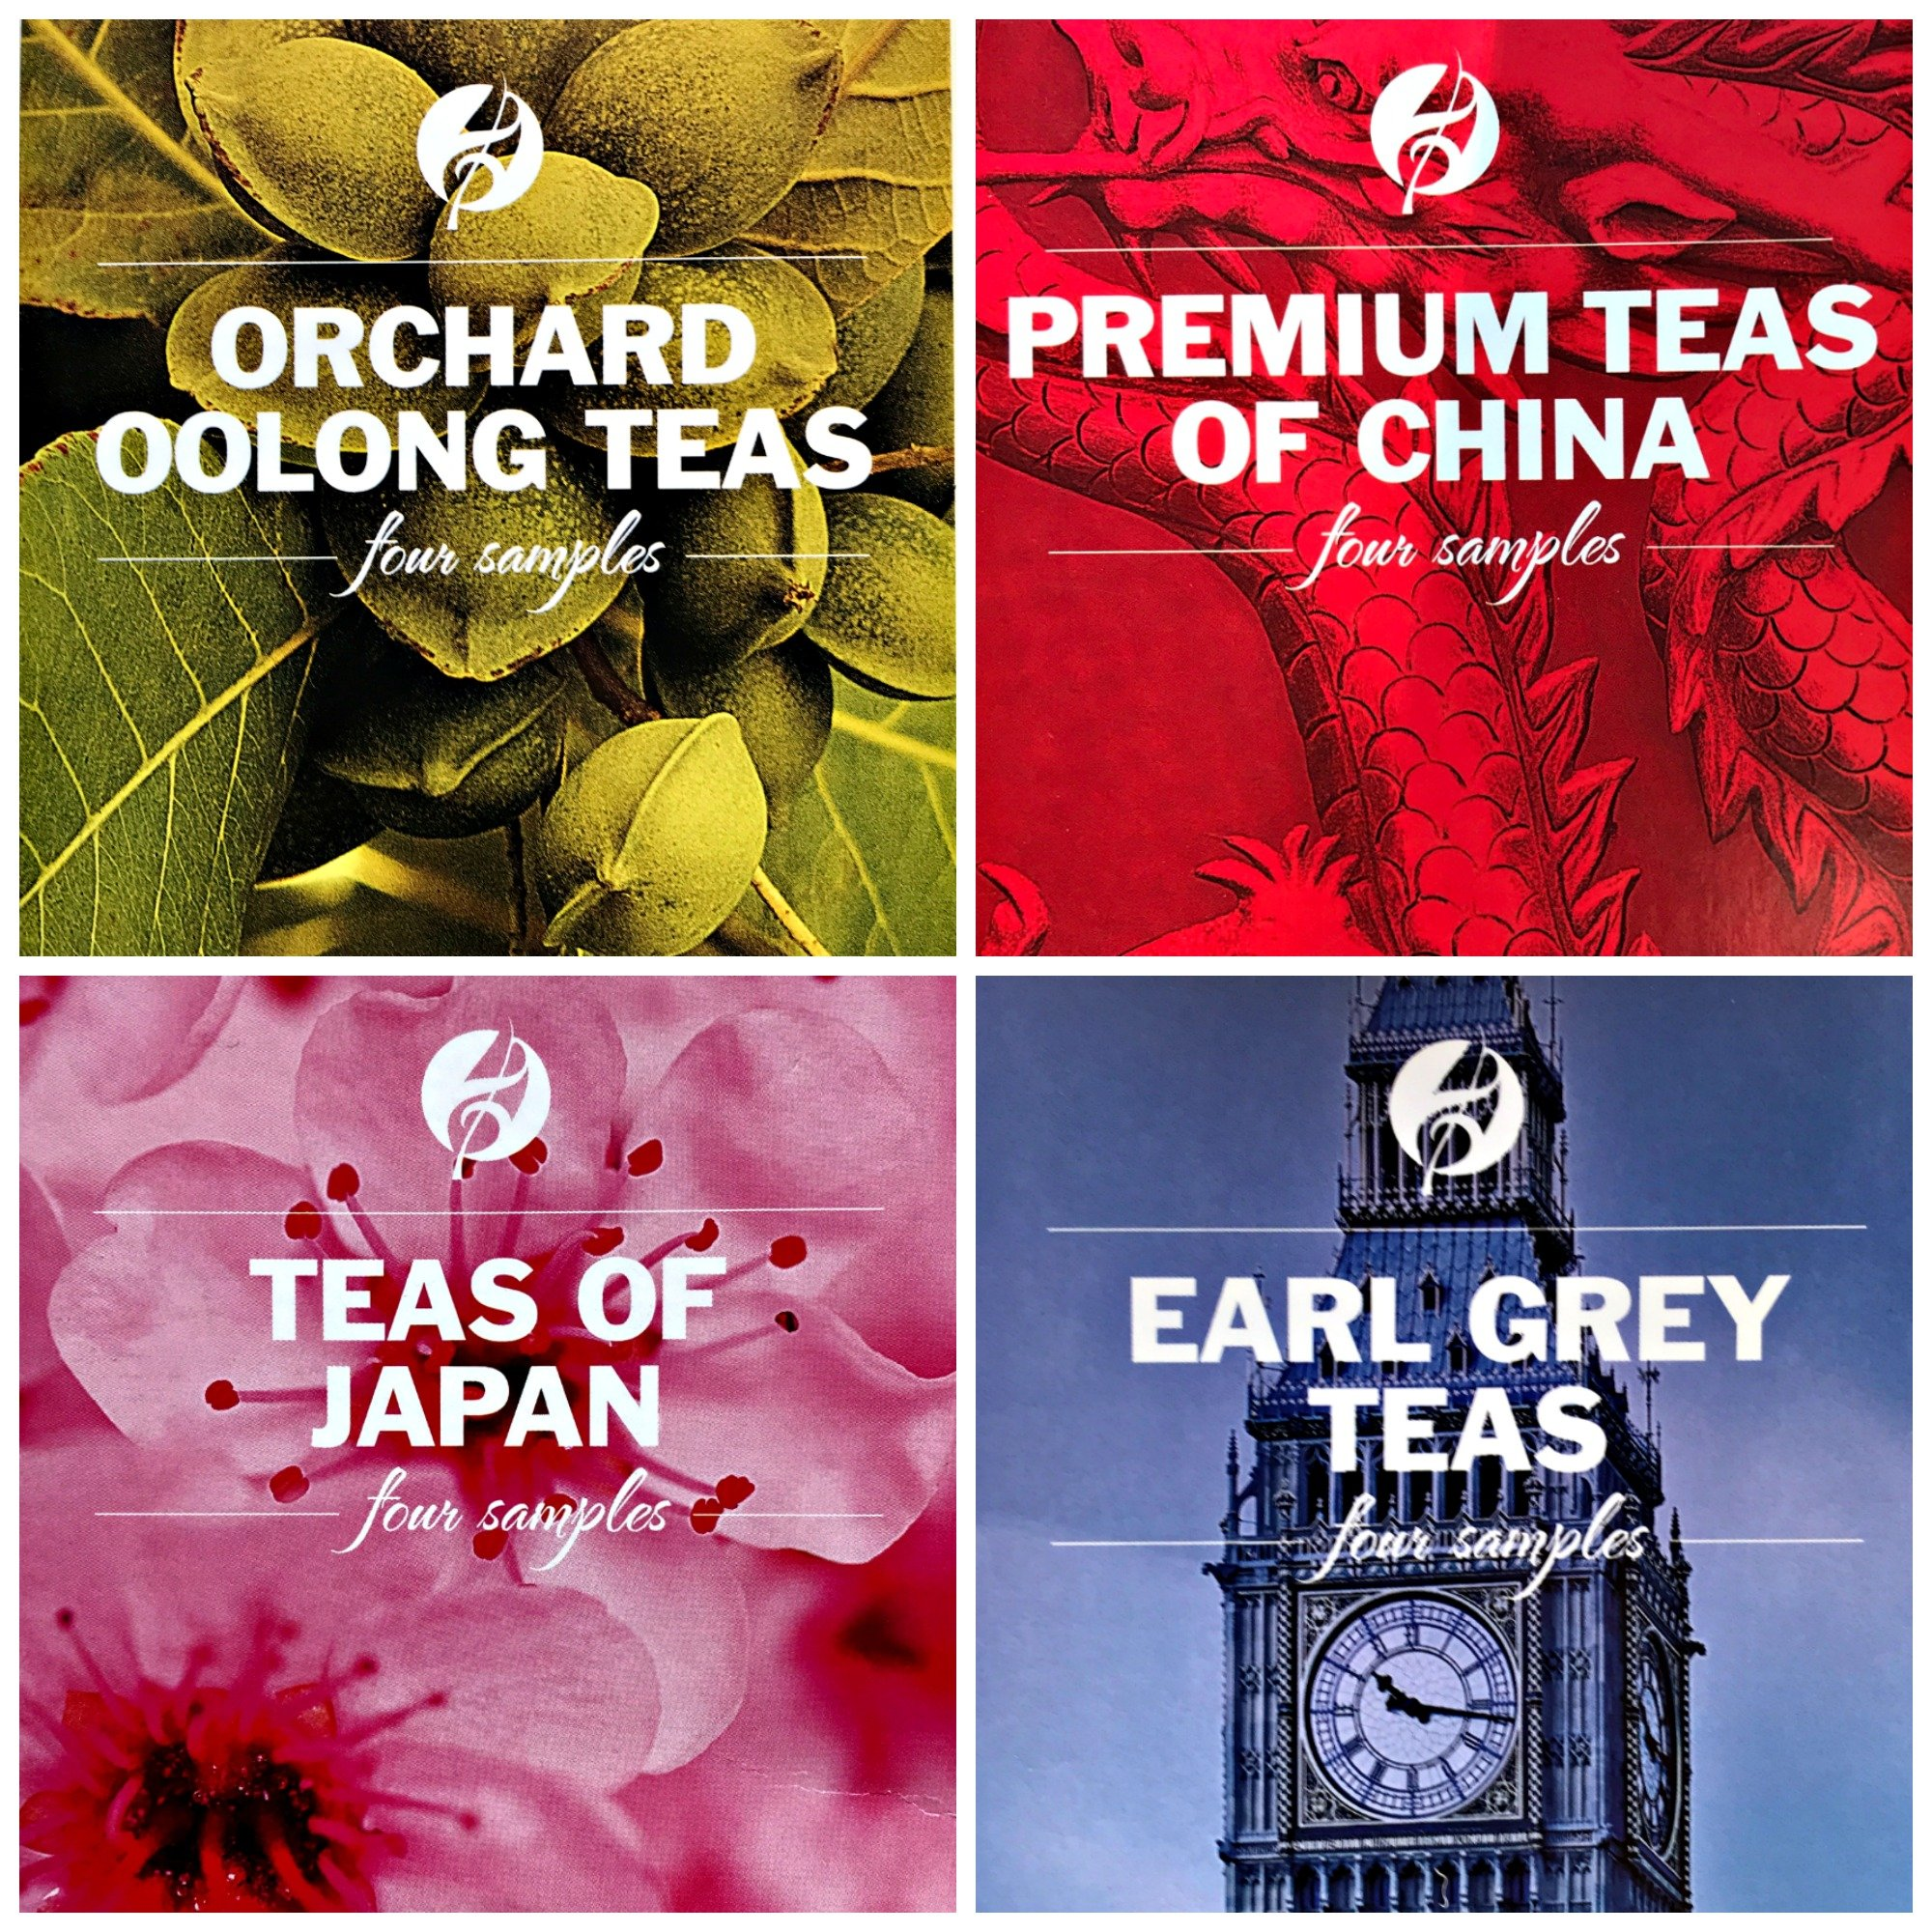 Adagio Gourmet Tea - sample boxes - Orchard Oolong, Premium Teas of China, Teas of Japan and Earl Grey Teas